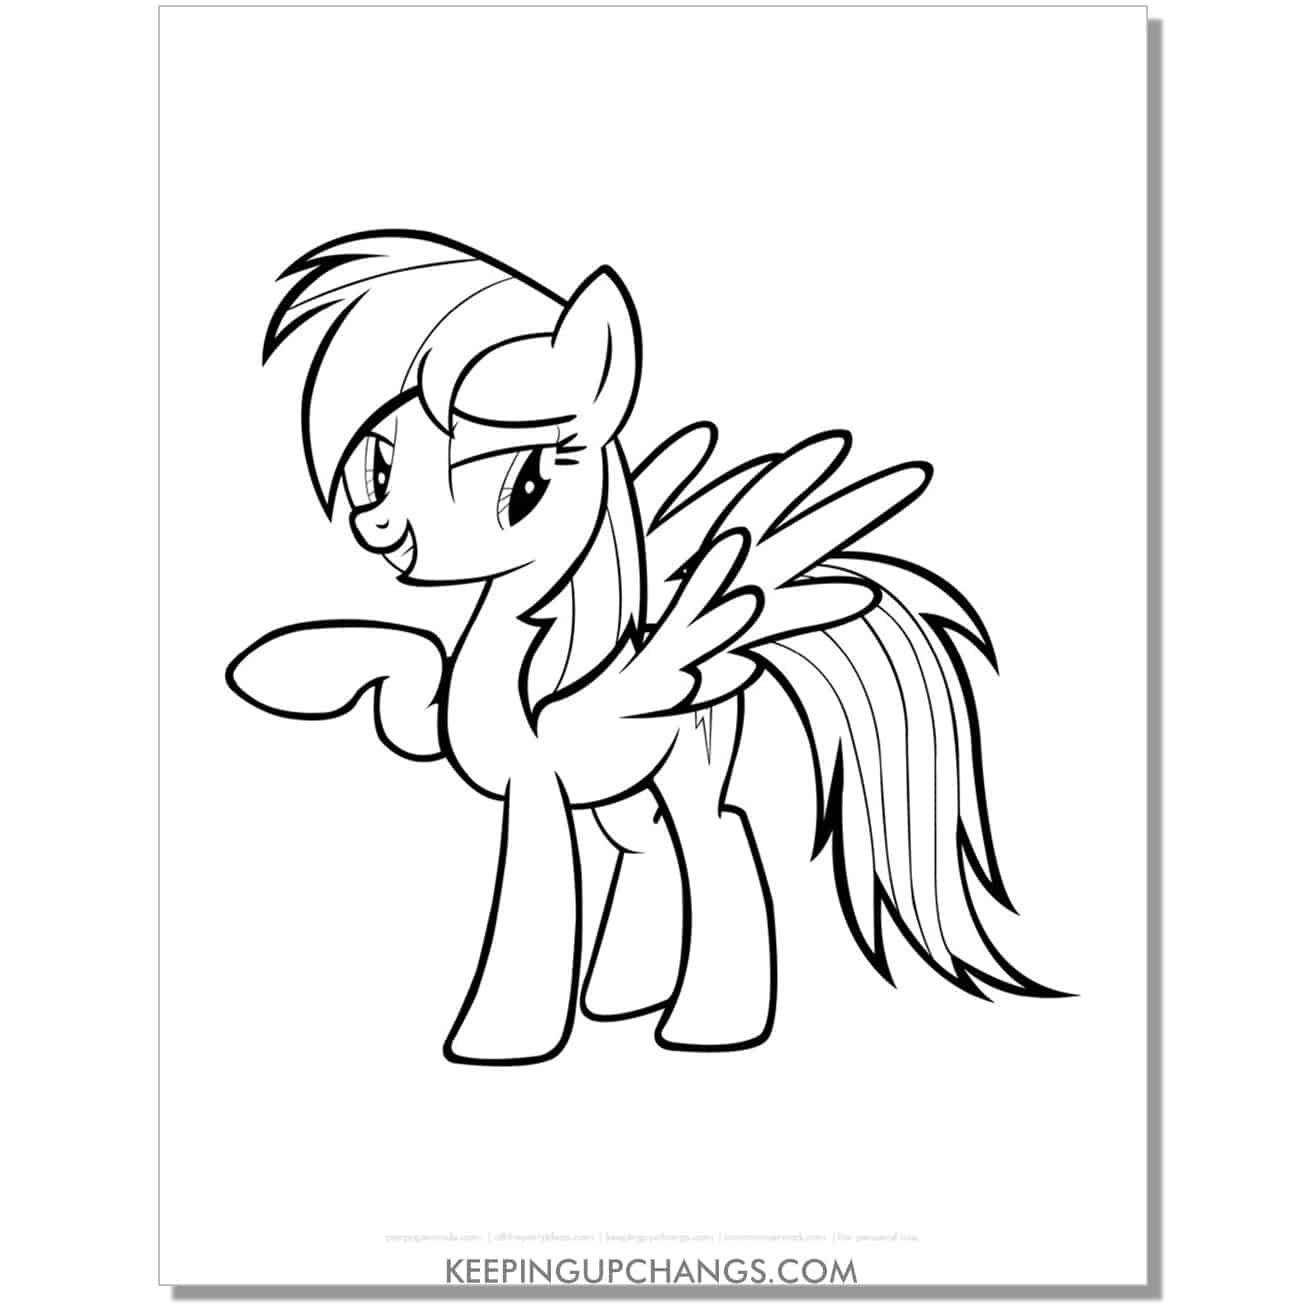 free cloud cutie mark my little pony coloring page.